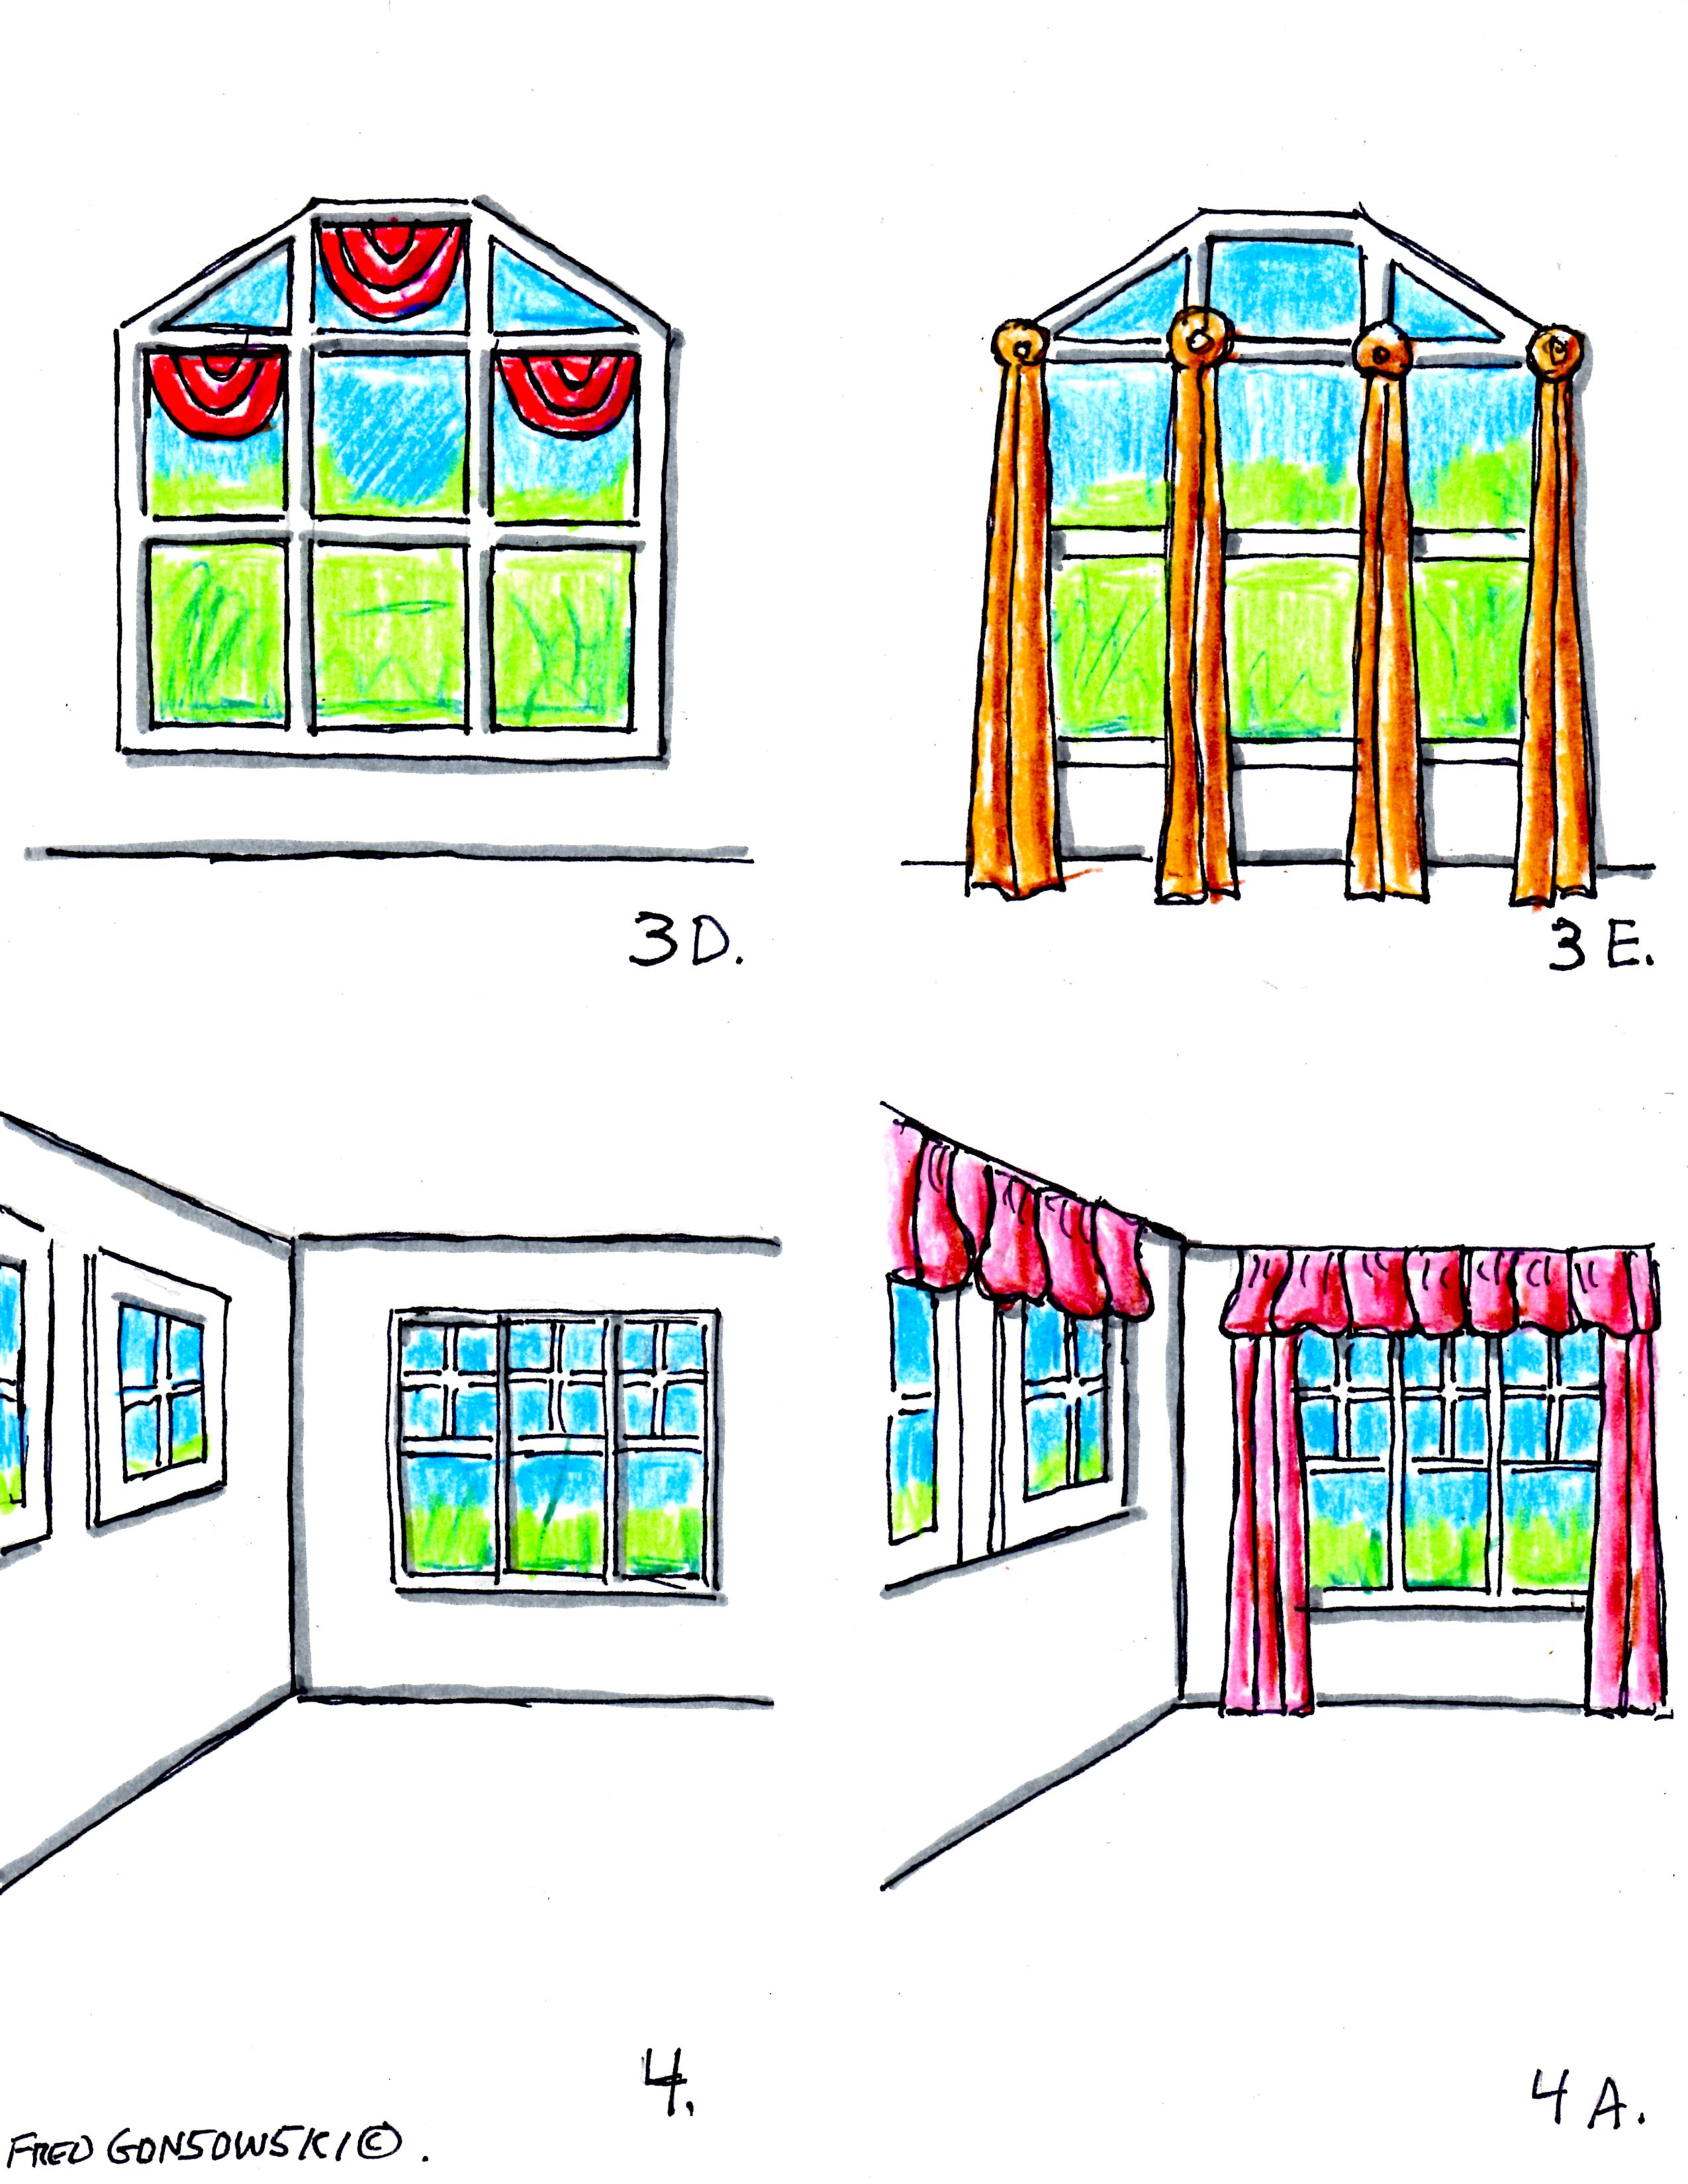 Hanging Valances Curtains And Drapes On Different Kinds